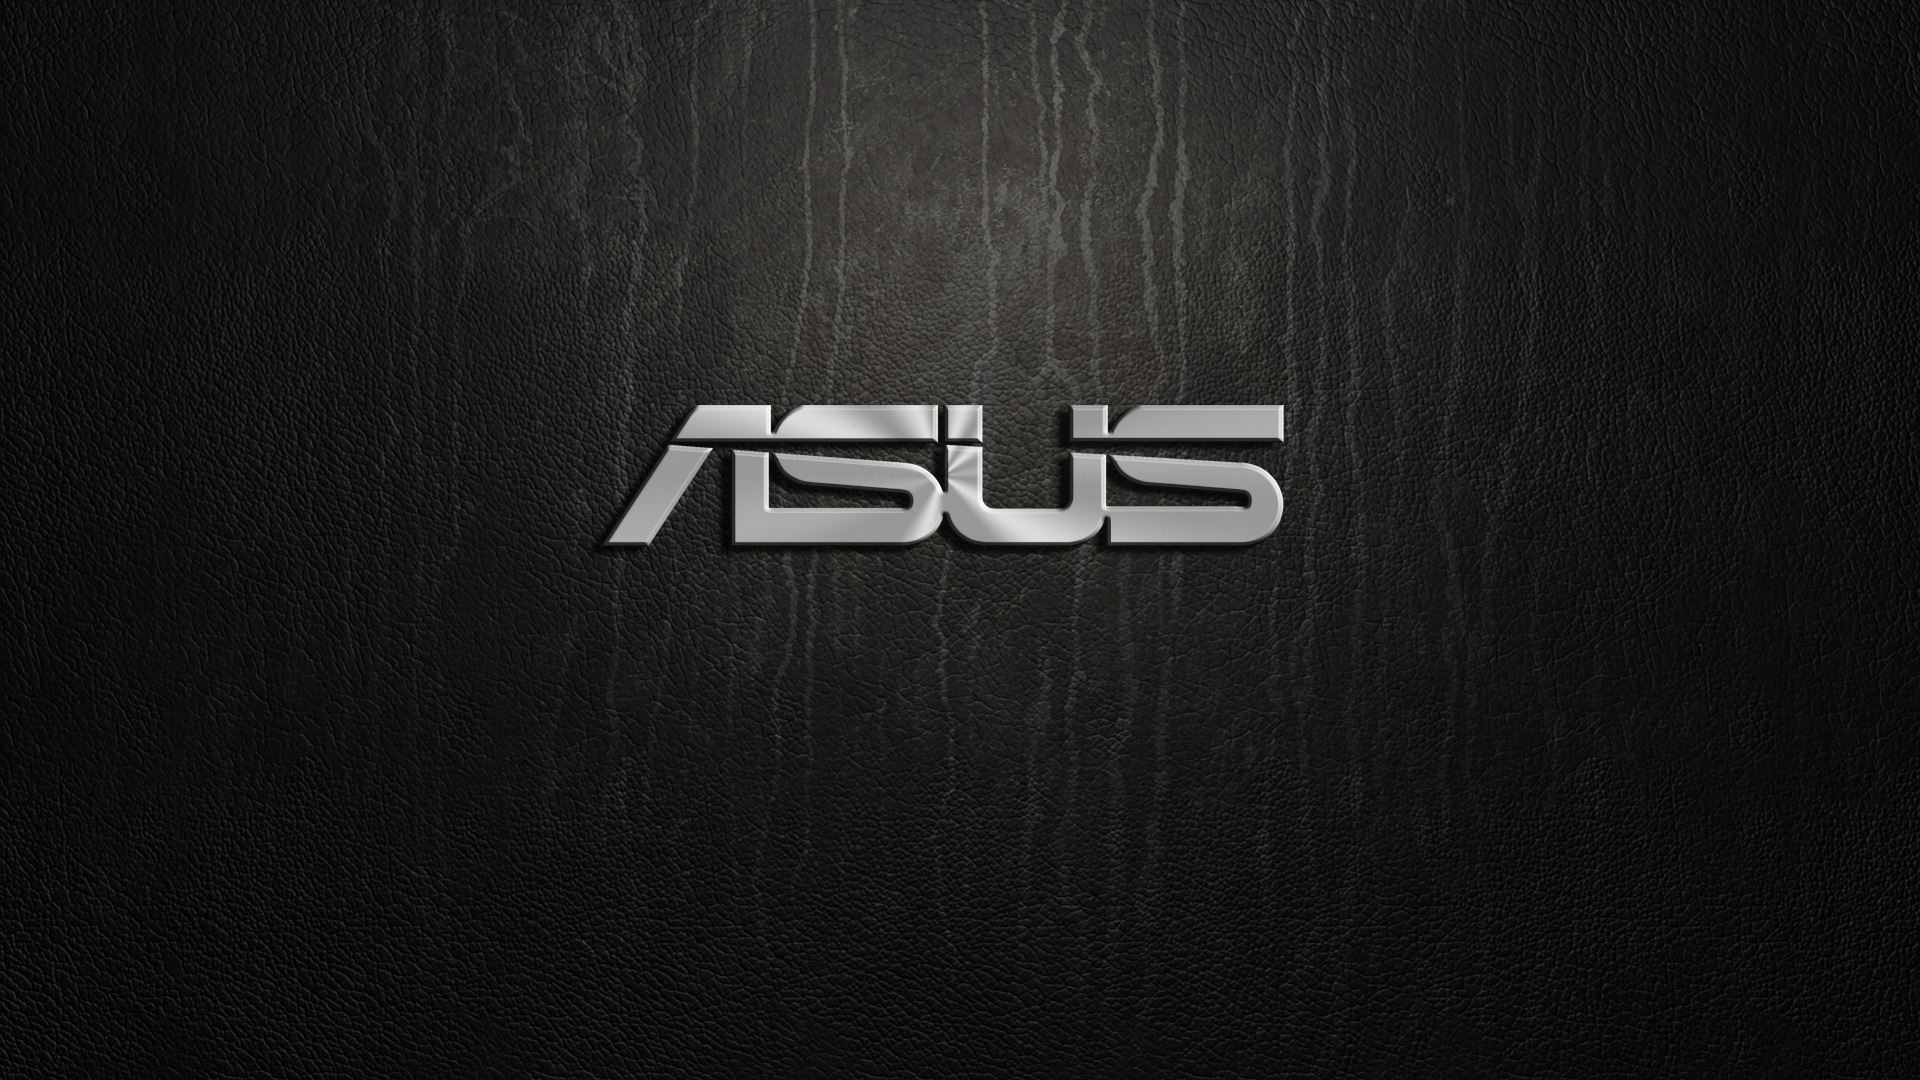 Download 3000 Wallpaper Asus Black Hd